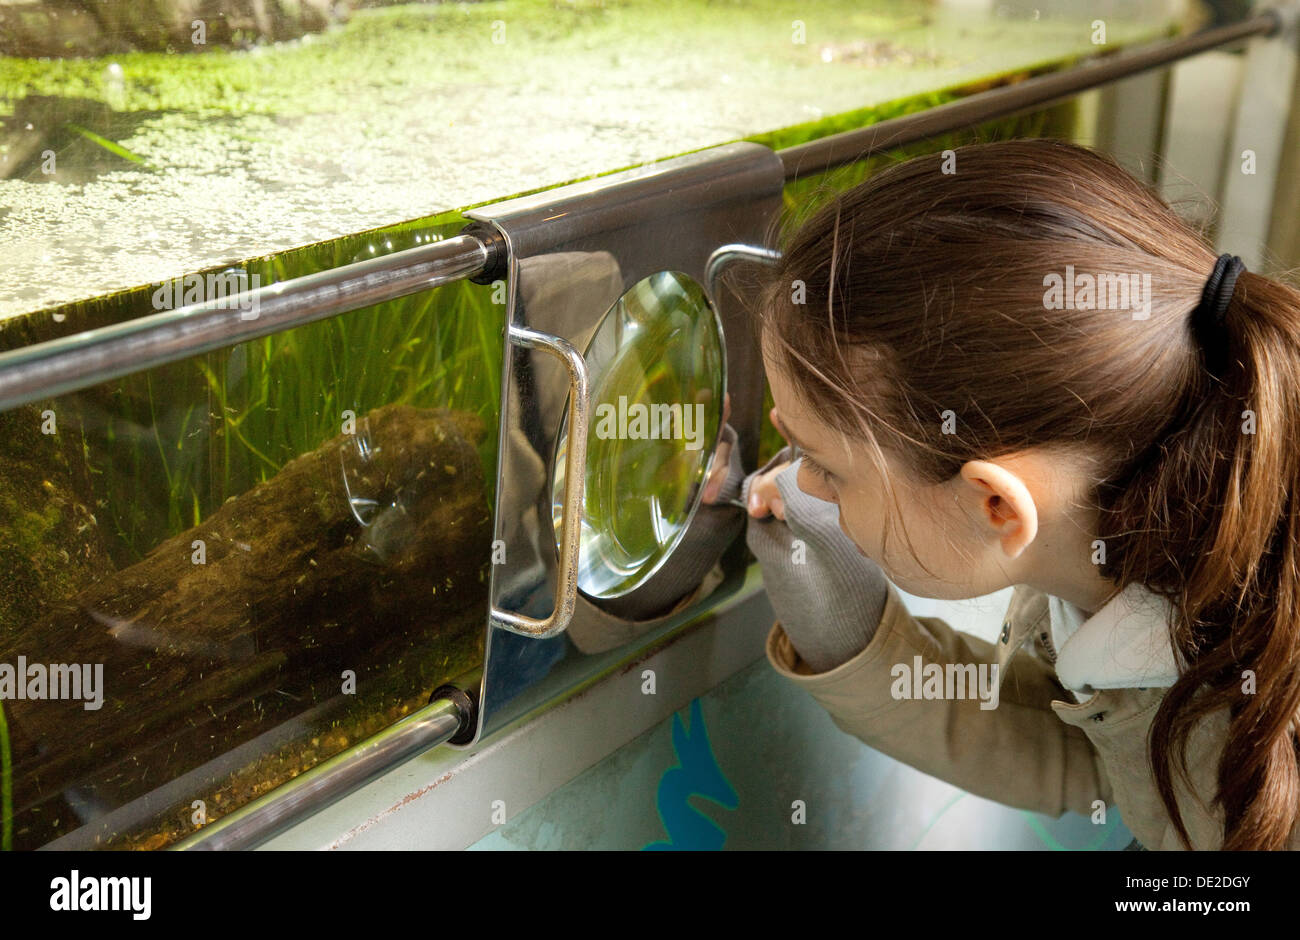 A child studying pond life as part of science of Biology, London Zoo, UK - Stock Image